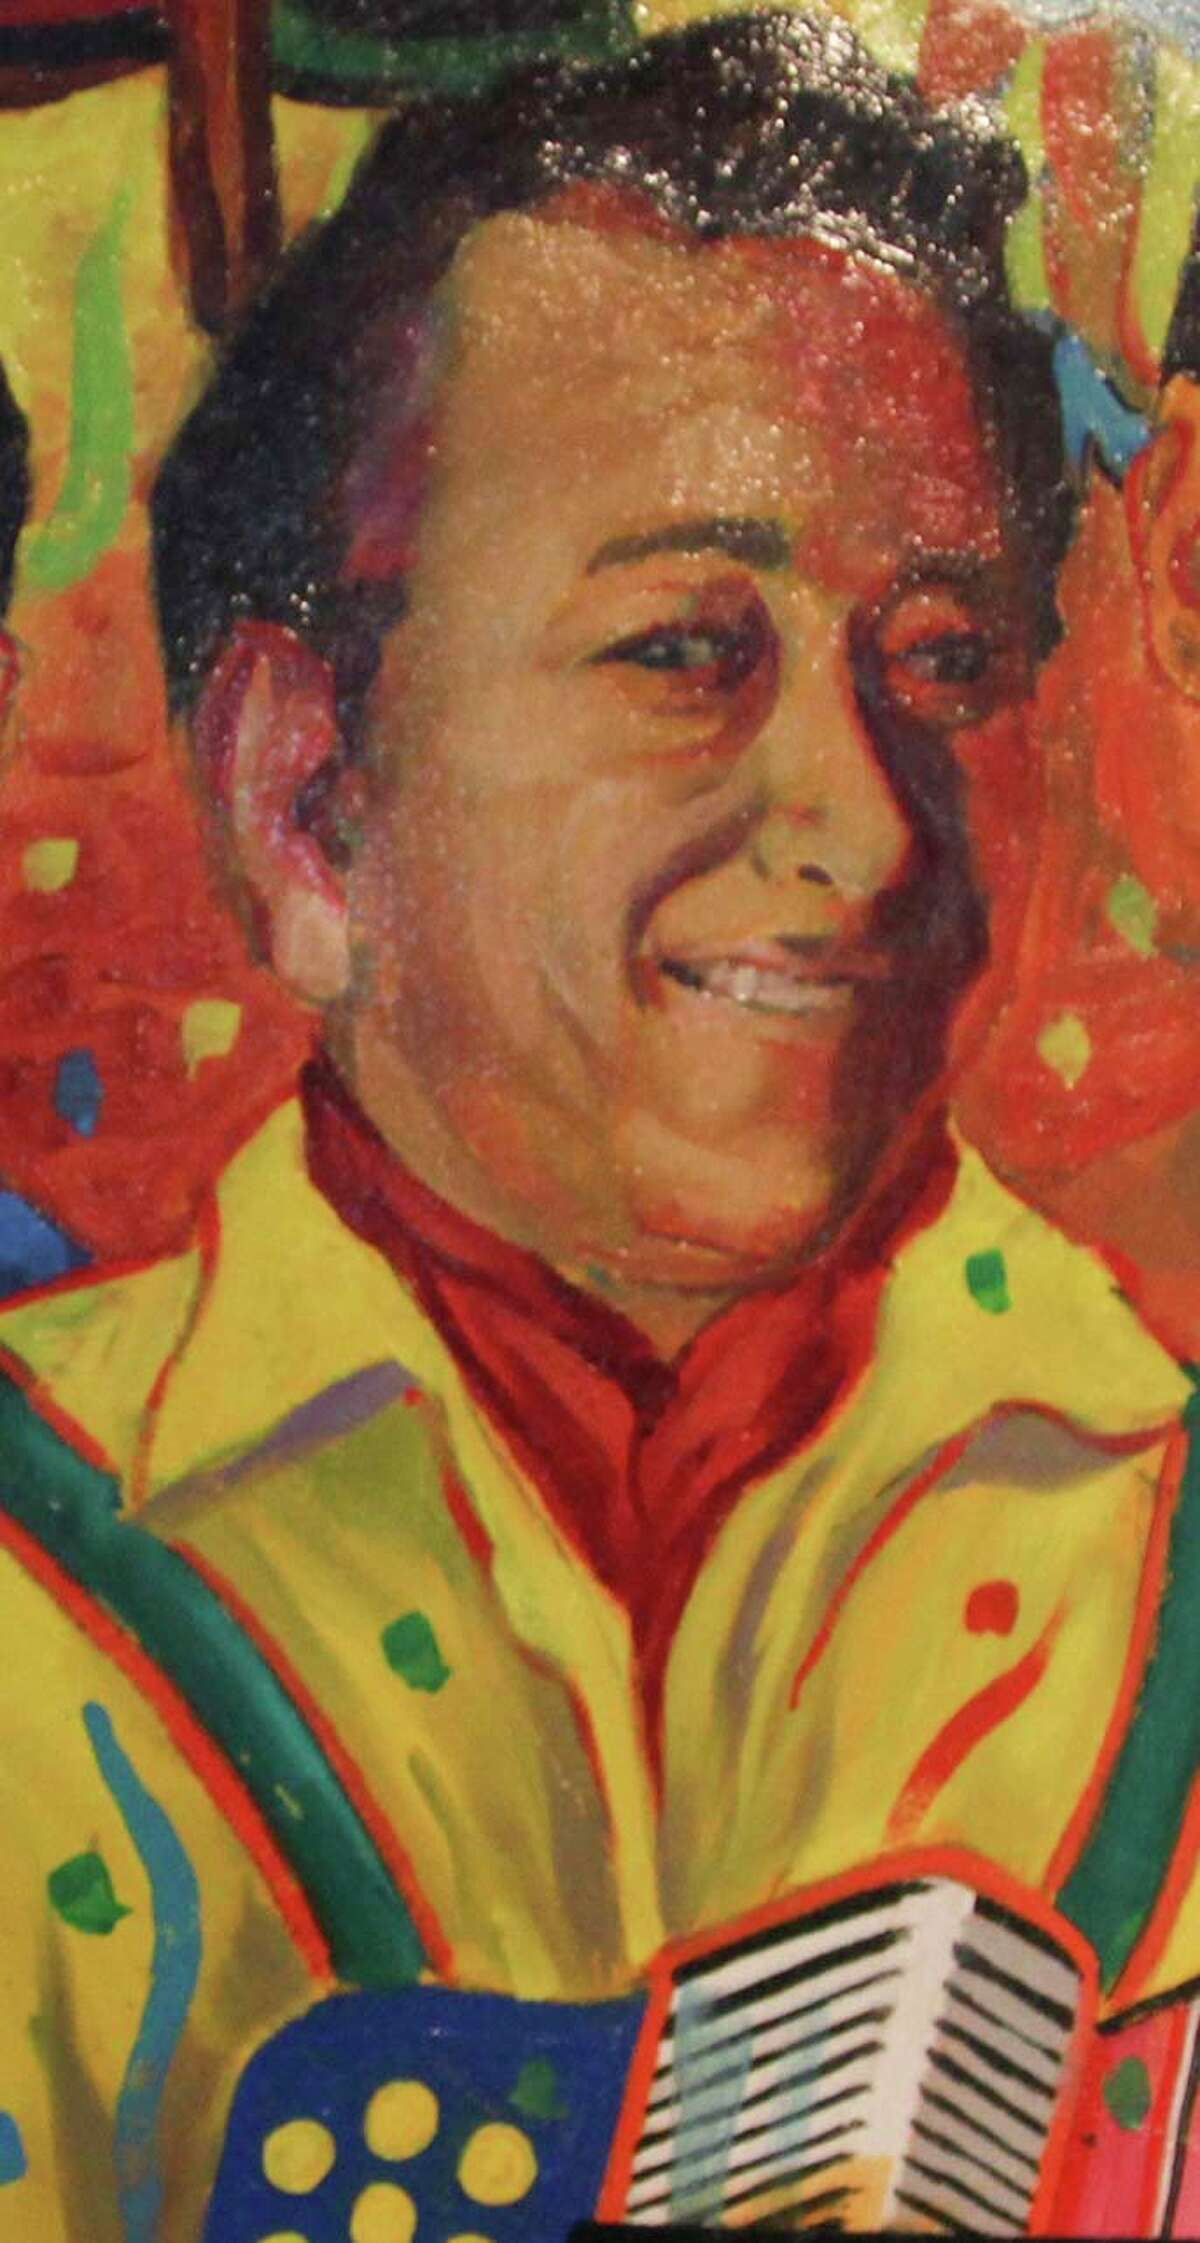 Flaco Jimenez The legendary San Antonio accordionist, who recently was awarded a lifetime achievement Grammy Award, has been influential in the music world for many years. Just last year, he was inducted into the Austin City Limits Hall of Fame.